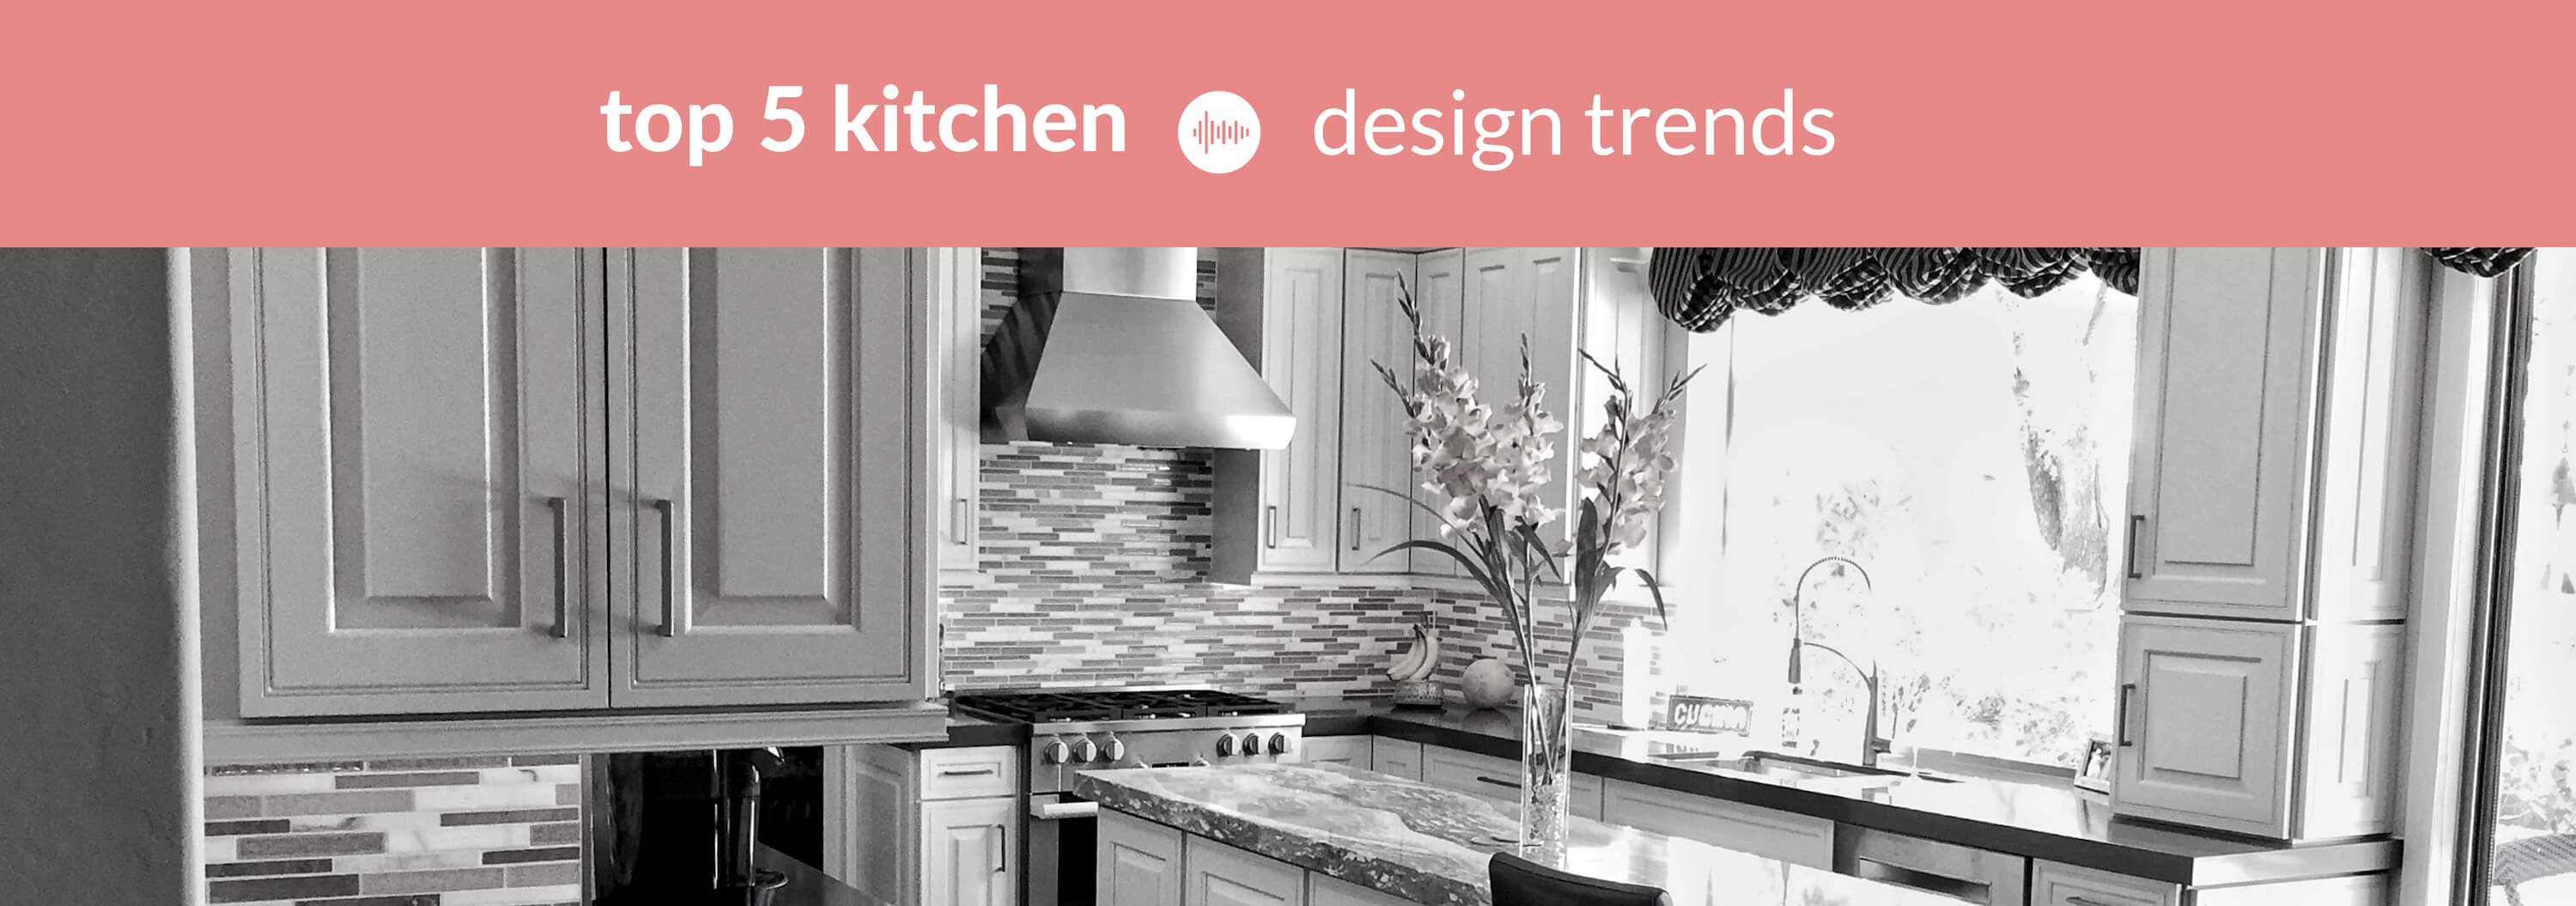 Black Design For Kitchen Top 5 Kitchen Design Trends For 2019 Custom Kitchen Design